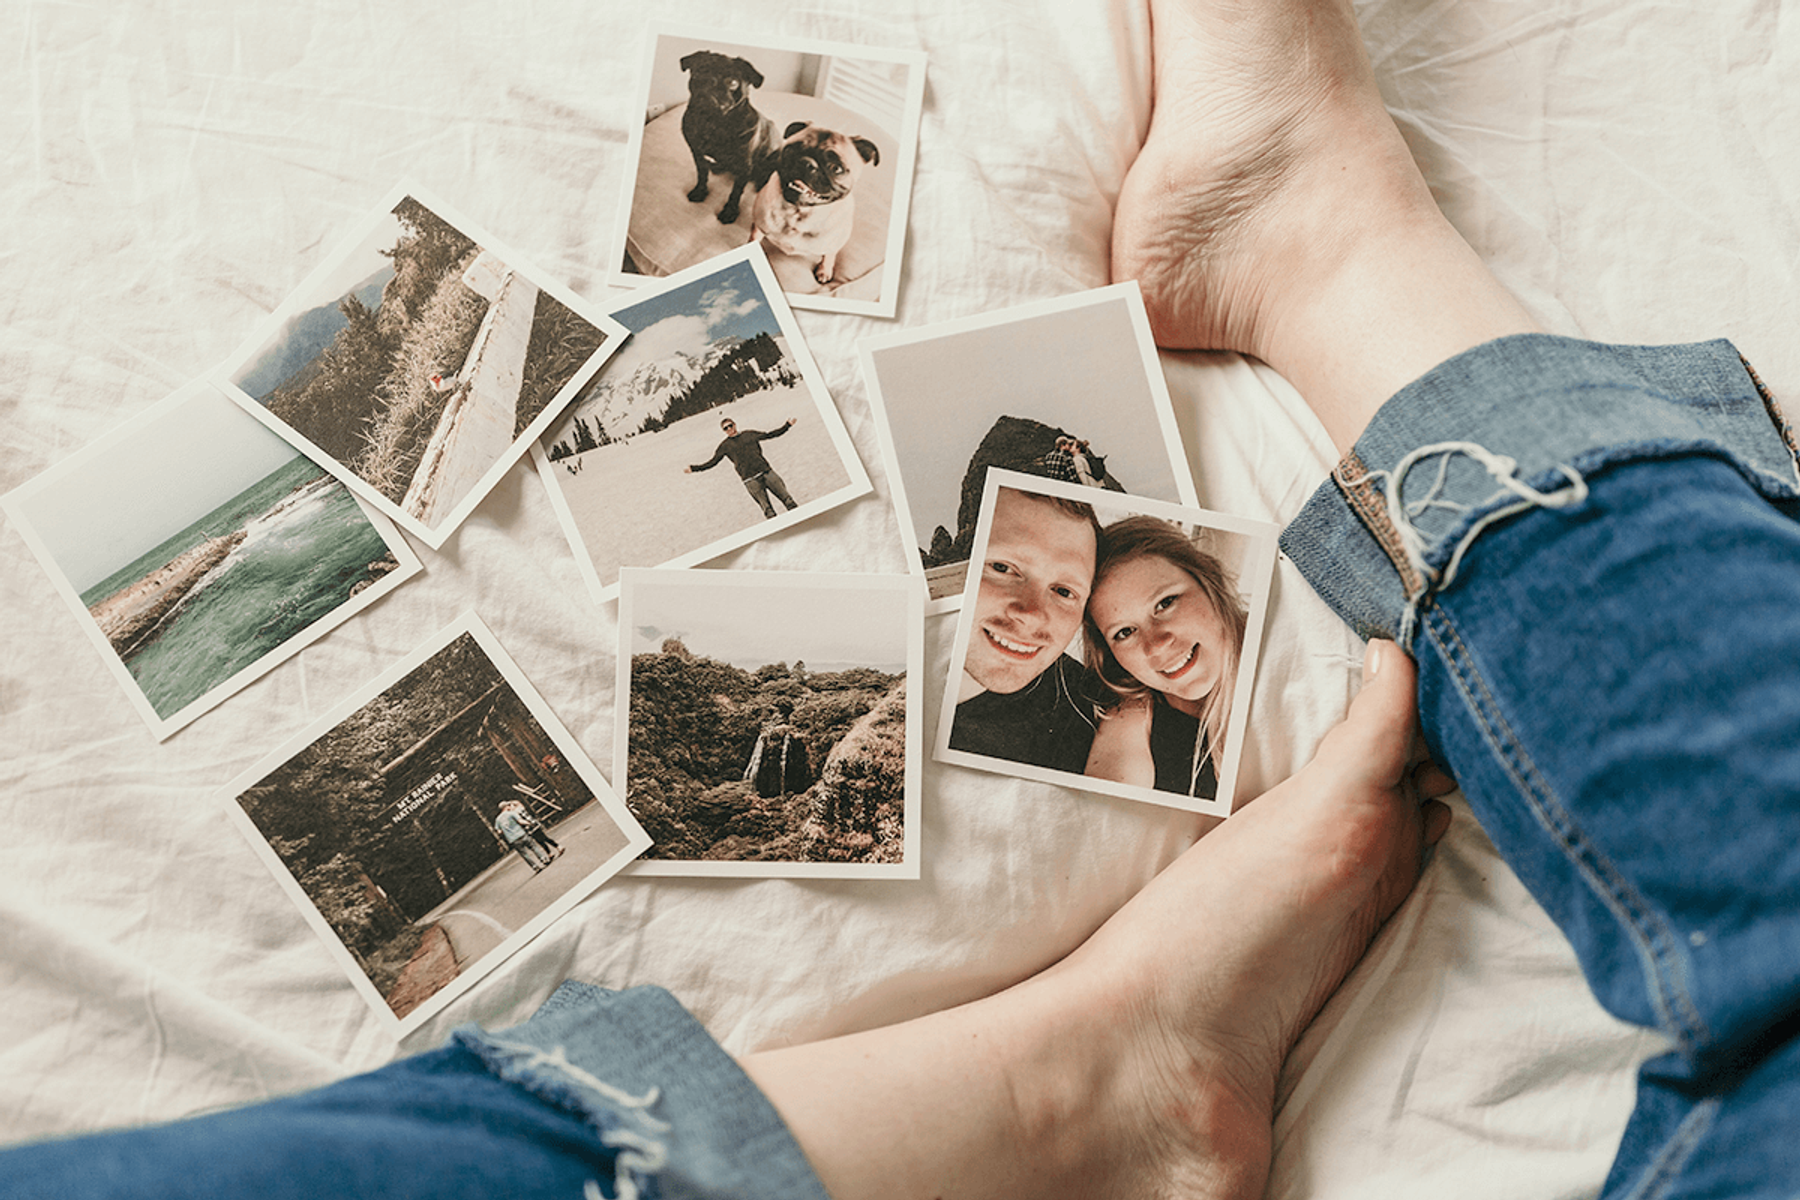 Polaroid pictures from a previous holiday spread out on the bed.